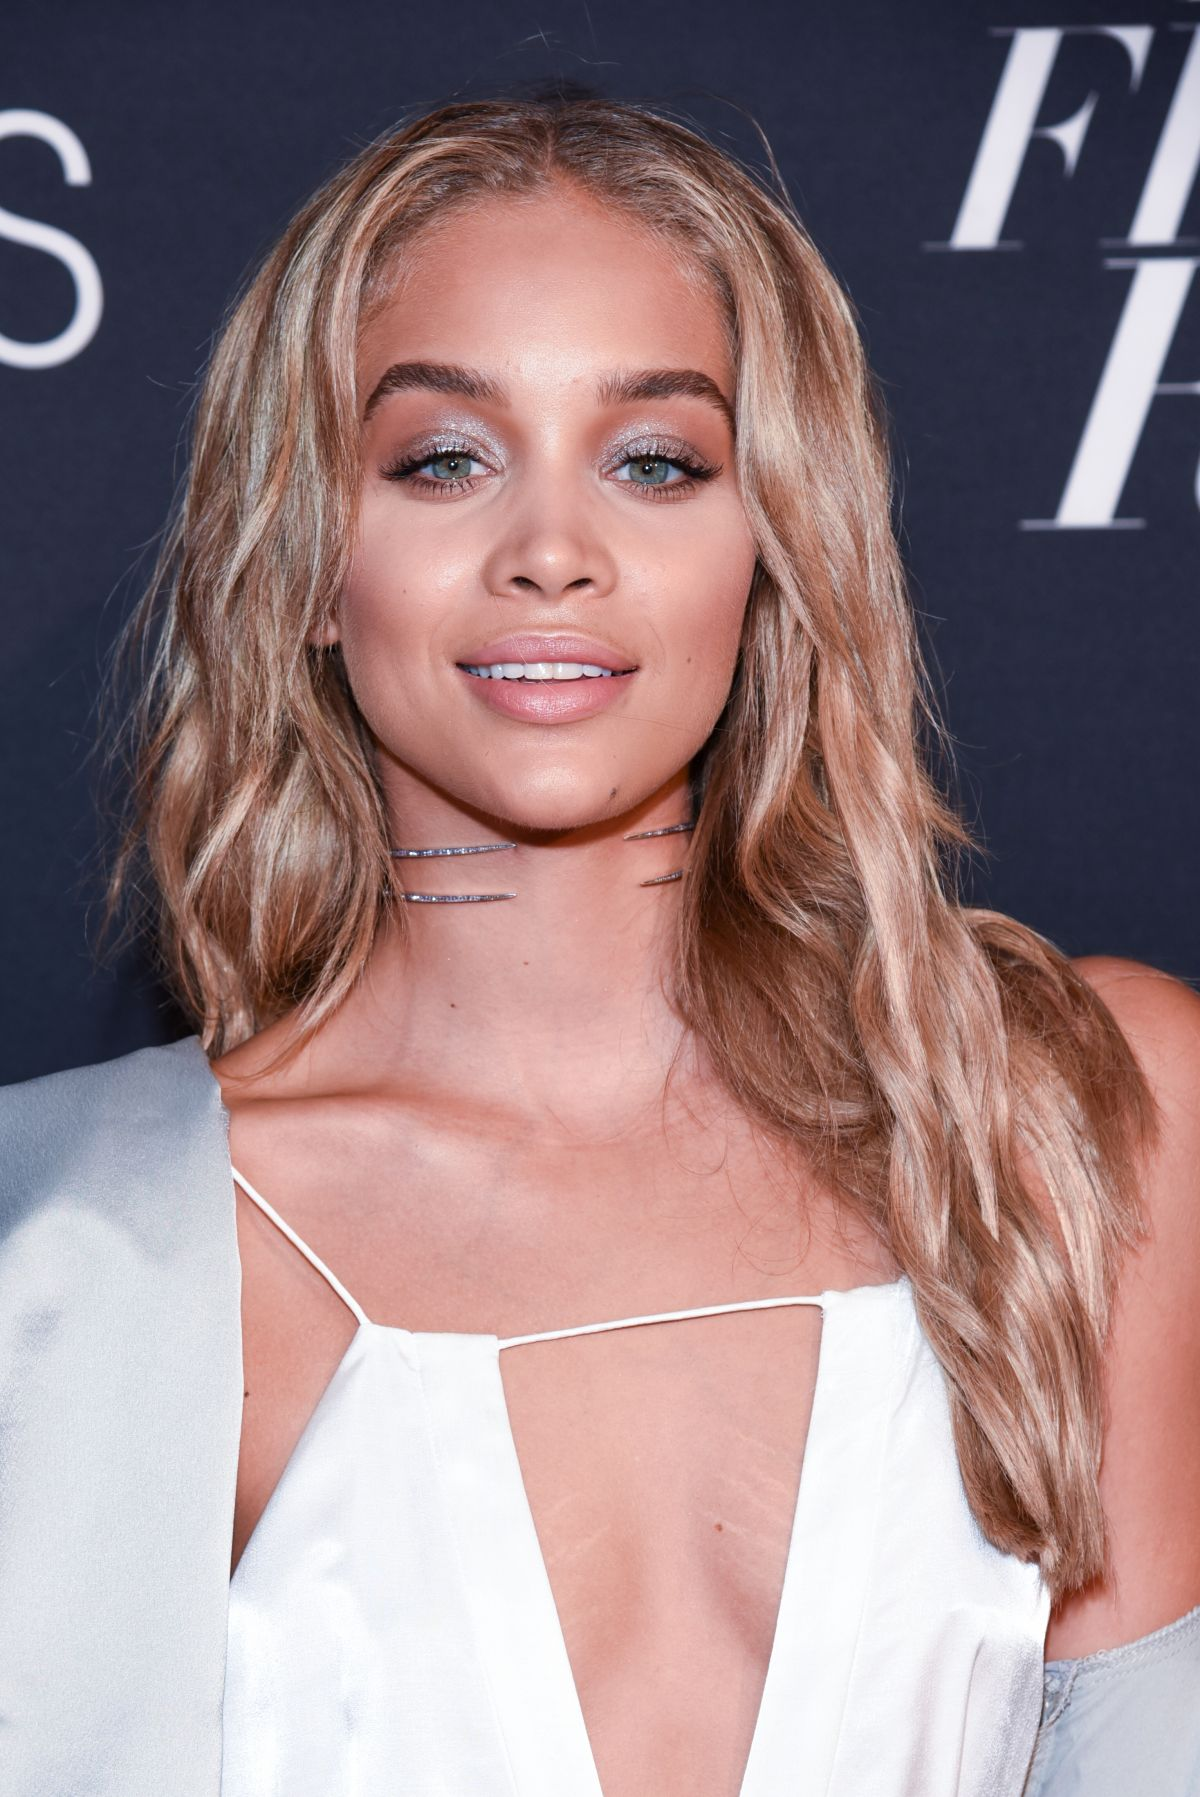 Jasmine Sanders At Macy S Presents Fashion S Front Row In